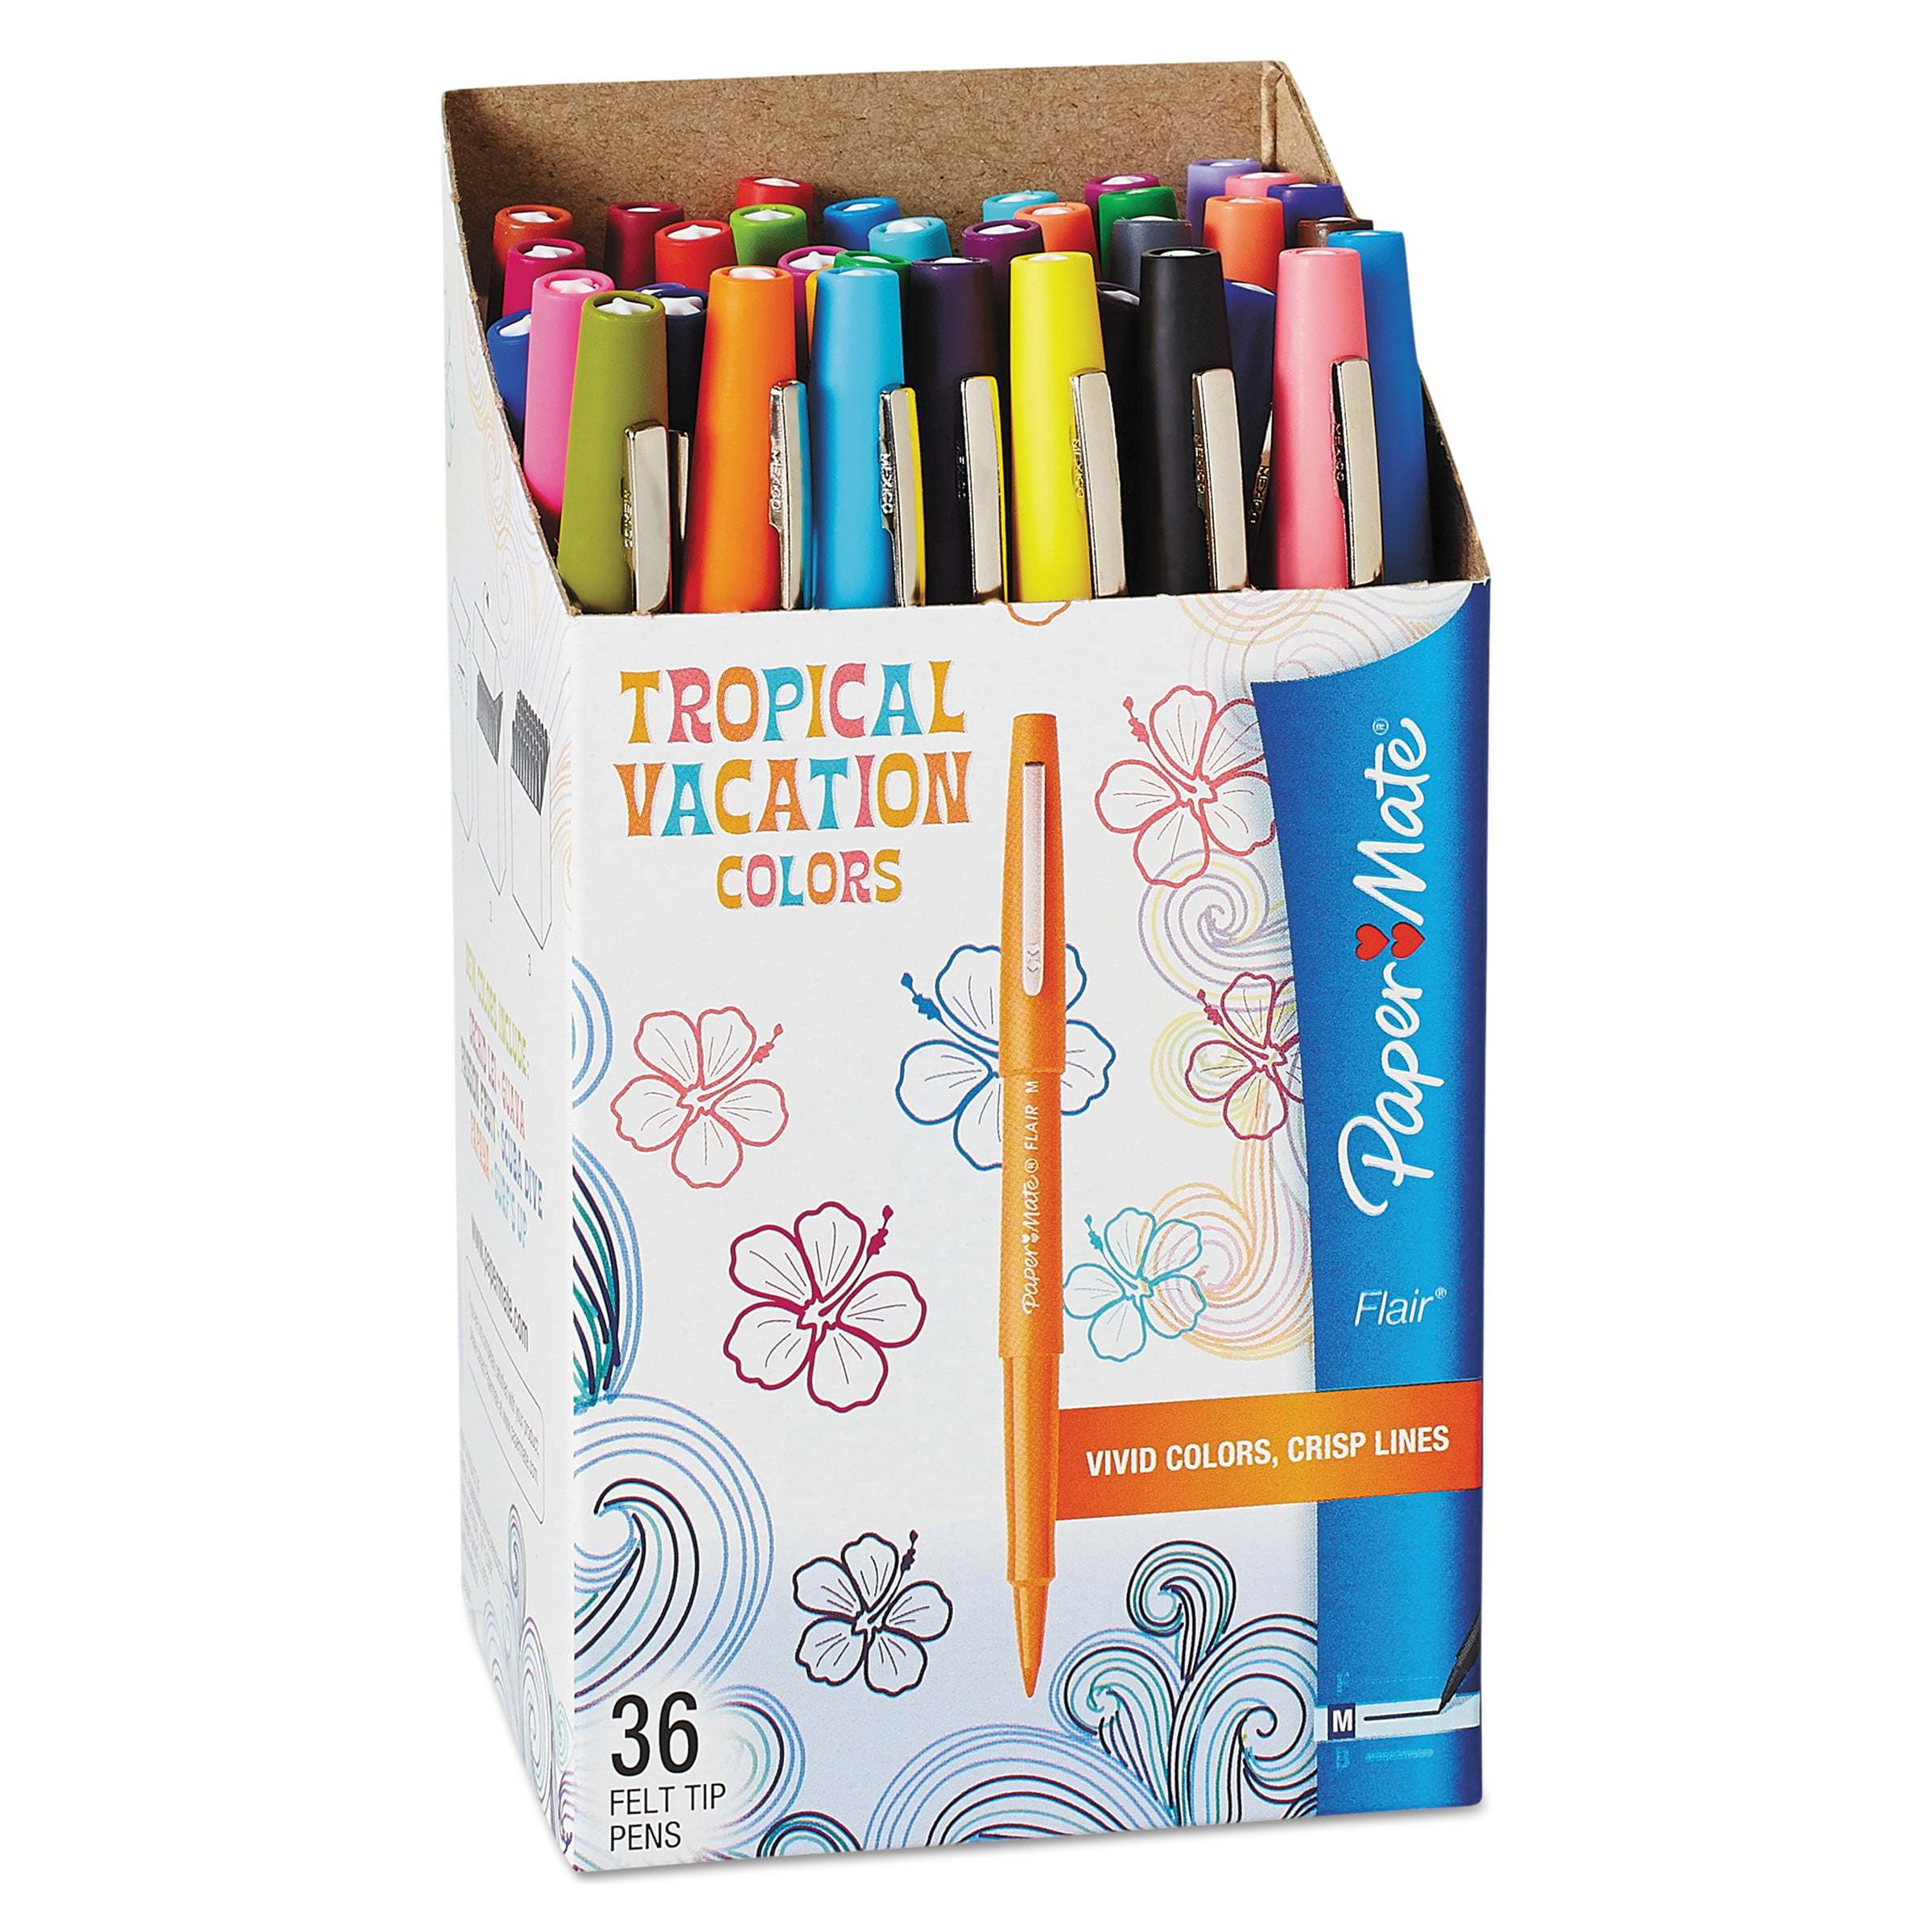 Paper Mate Flair Felt Tip Pens, Medium Point, Limited Edition Tropical & Assorted Colors, 36 Pack by Sanford